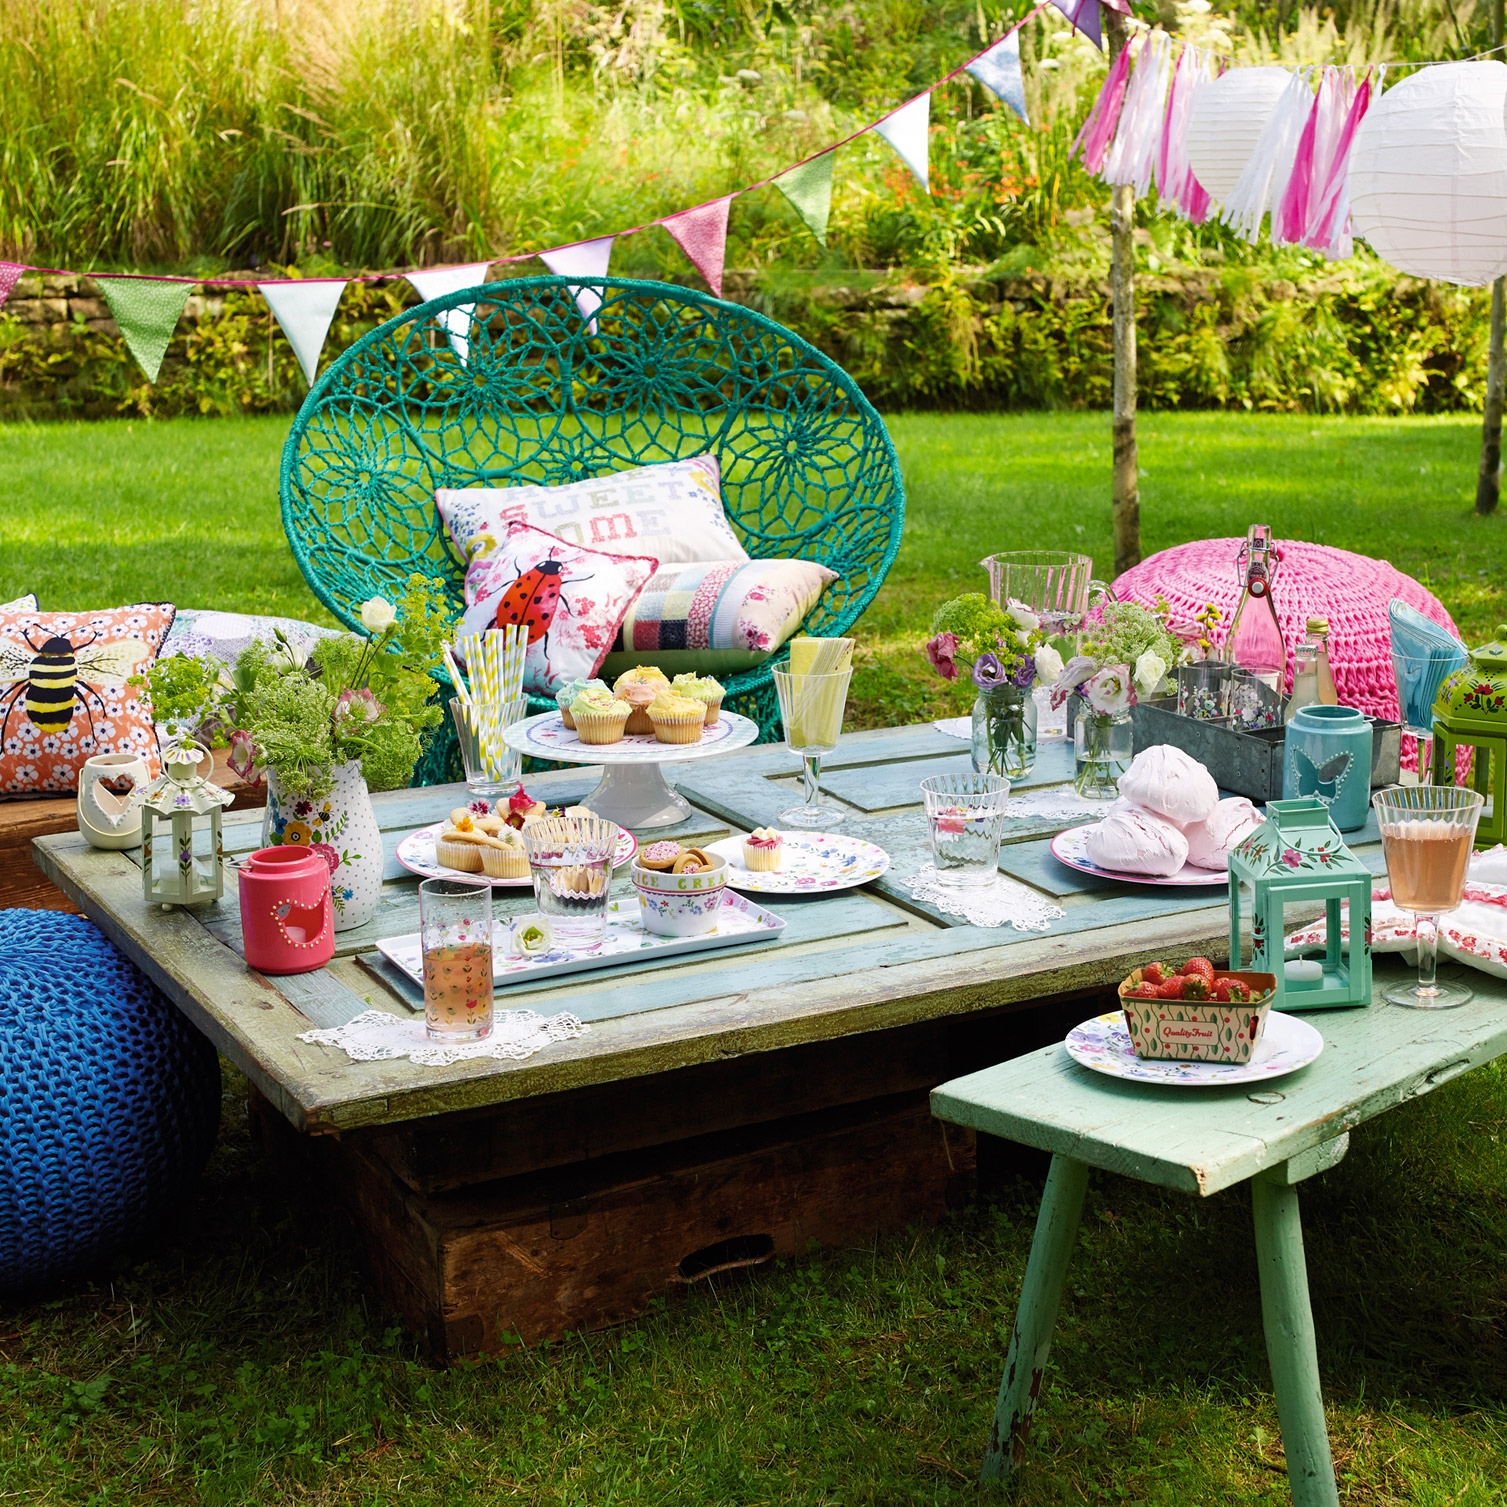 Picnic Themed Decorations 8 Top Picnic Ideas For Summer Picnic Ideas Good